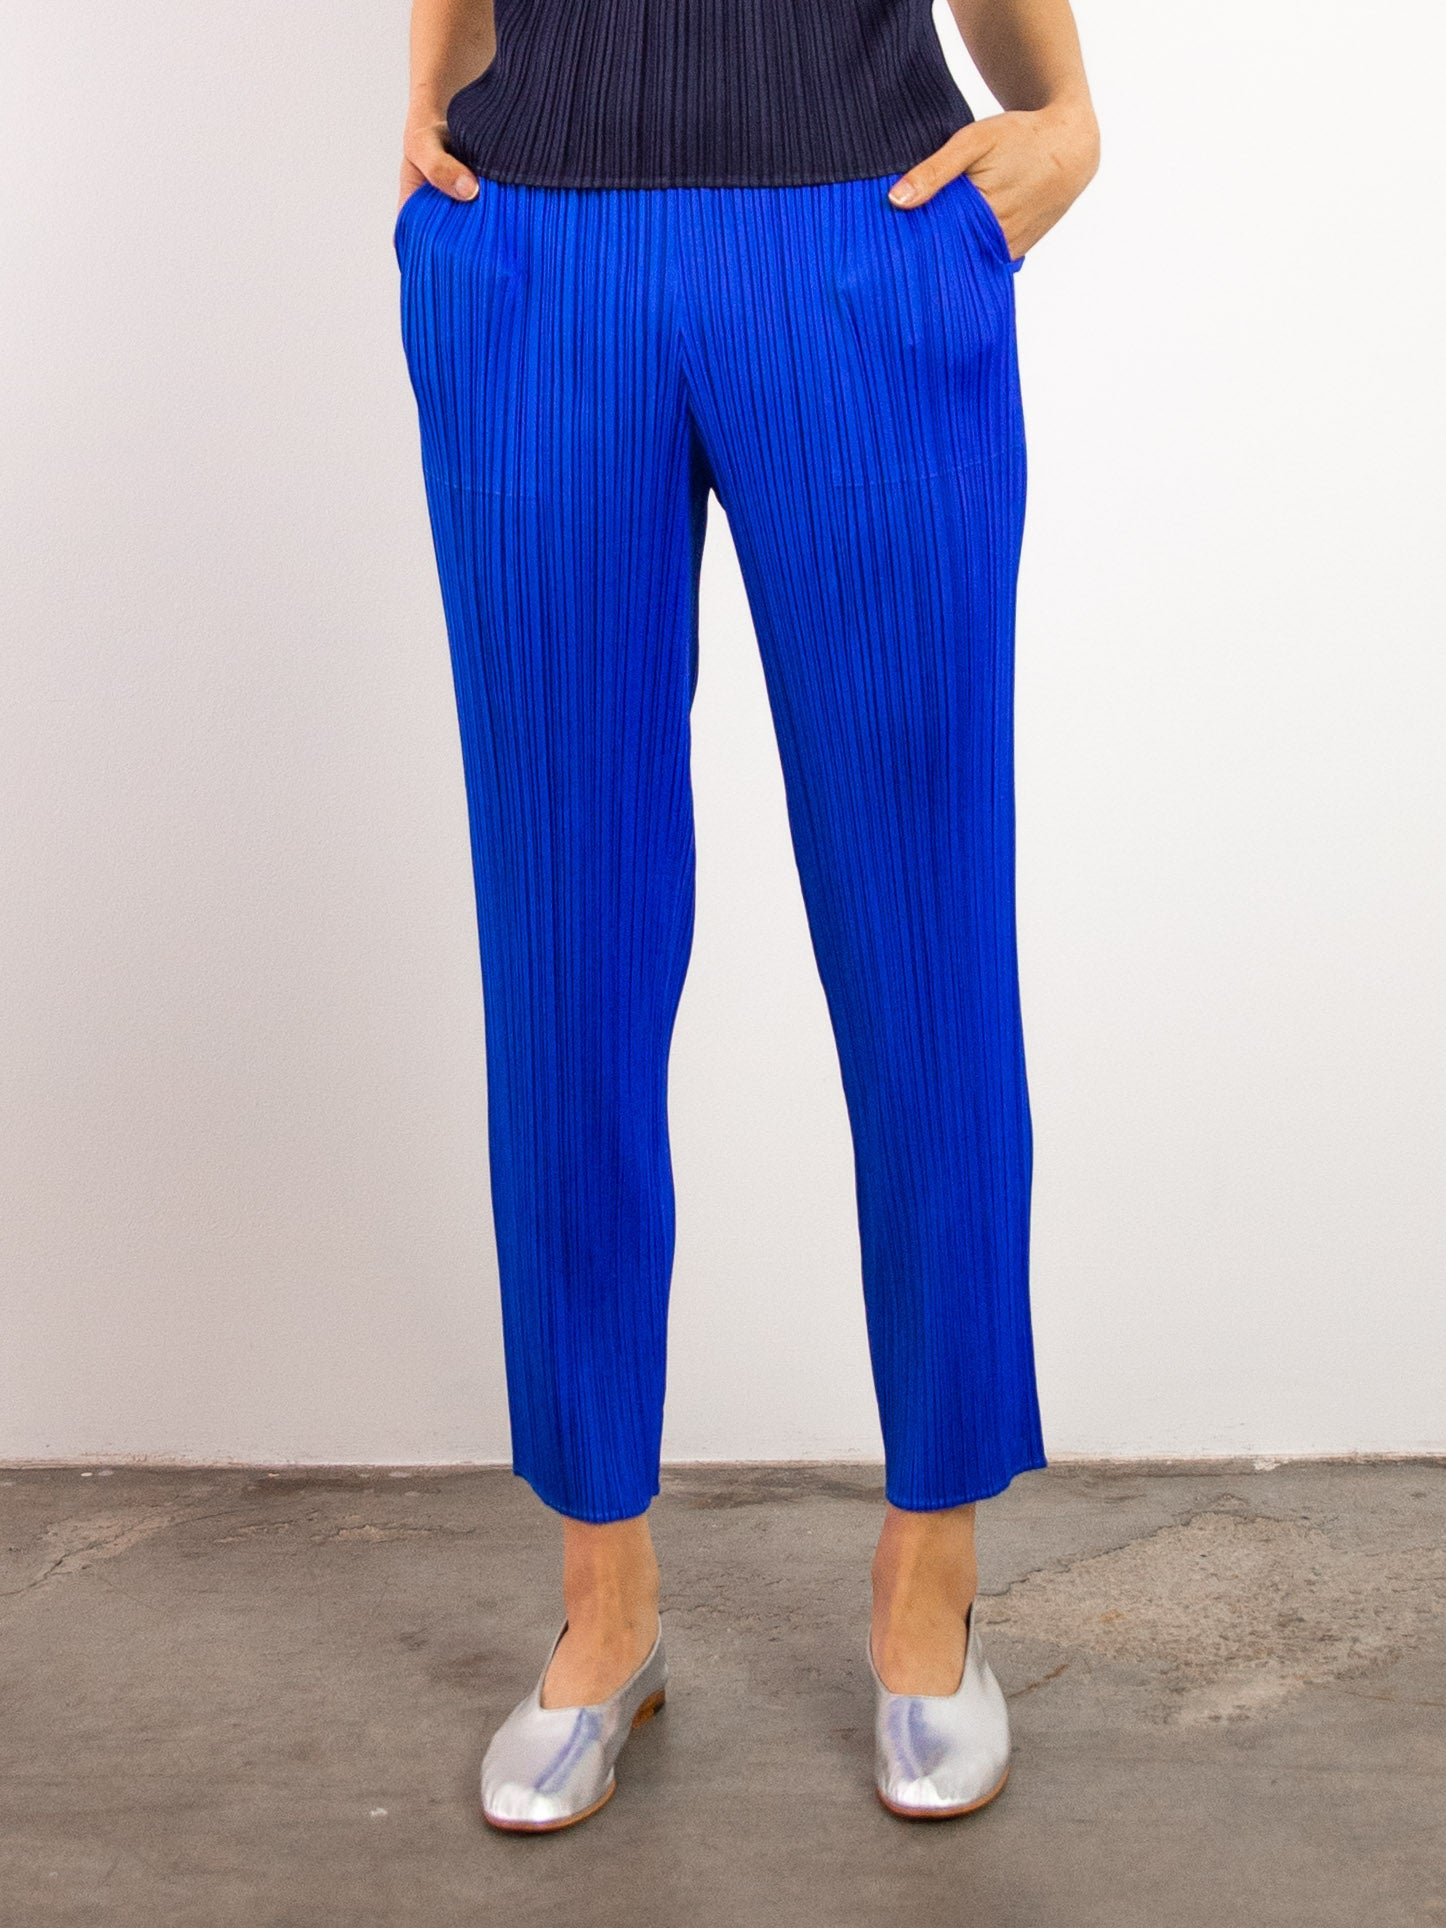 New Colourful Basics II Pants - Blue